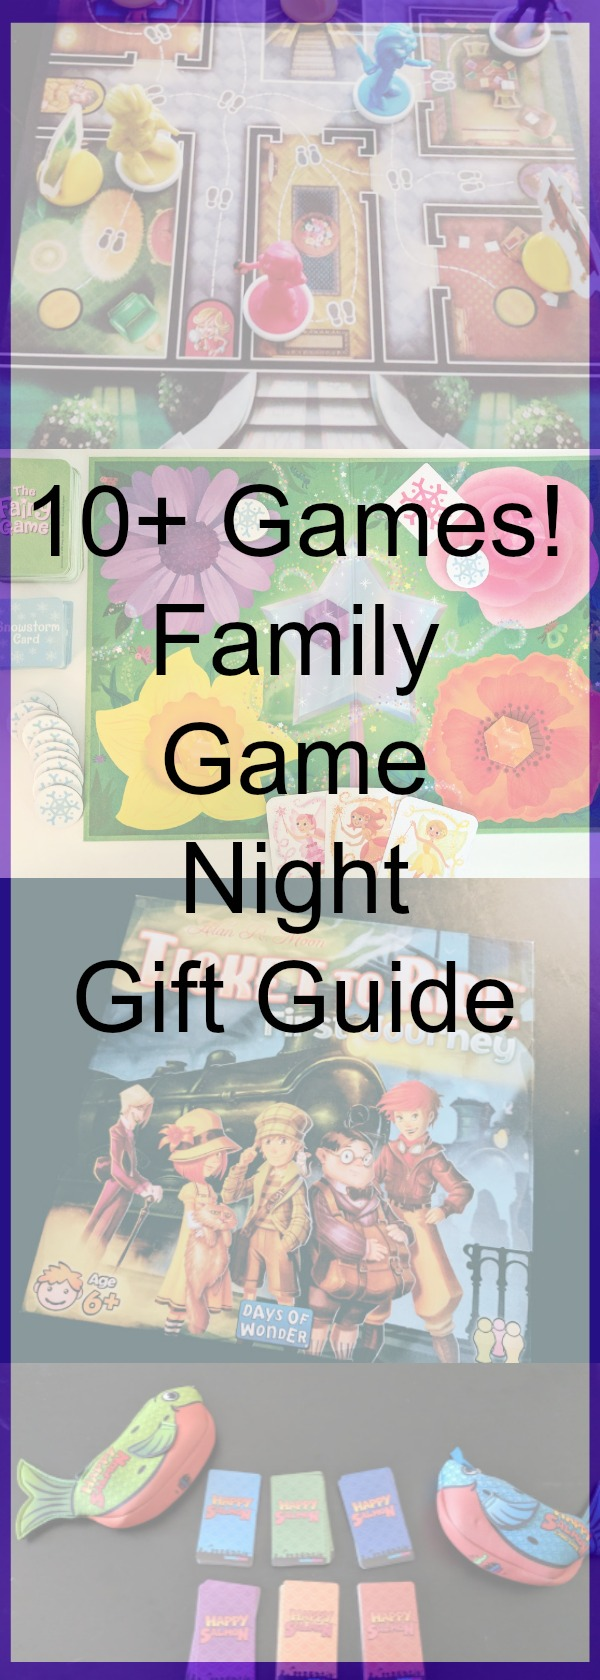 Add one or more of these fun board games and card games to your family game night. Have a blast playing and bonding with your kids. These are all family friendly and great to play with kids - especially the cooperative board games! #gamenight #boardgames #giftguide